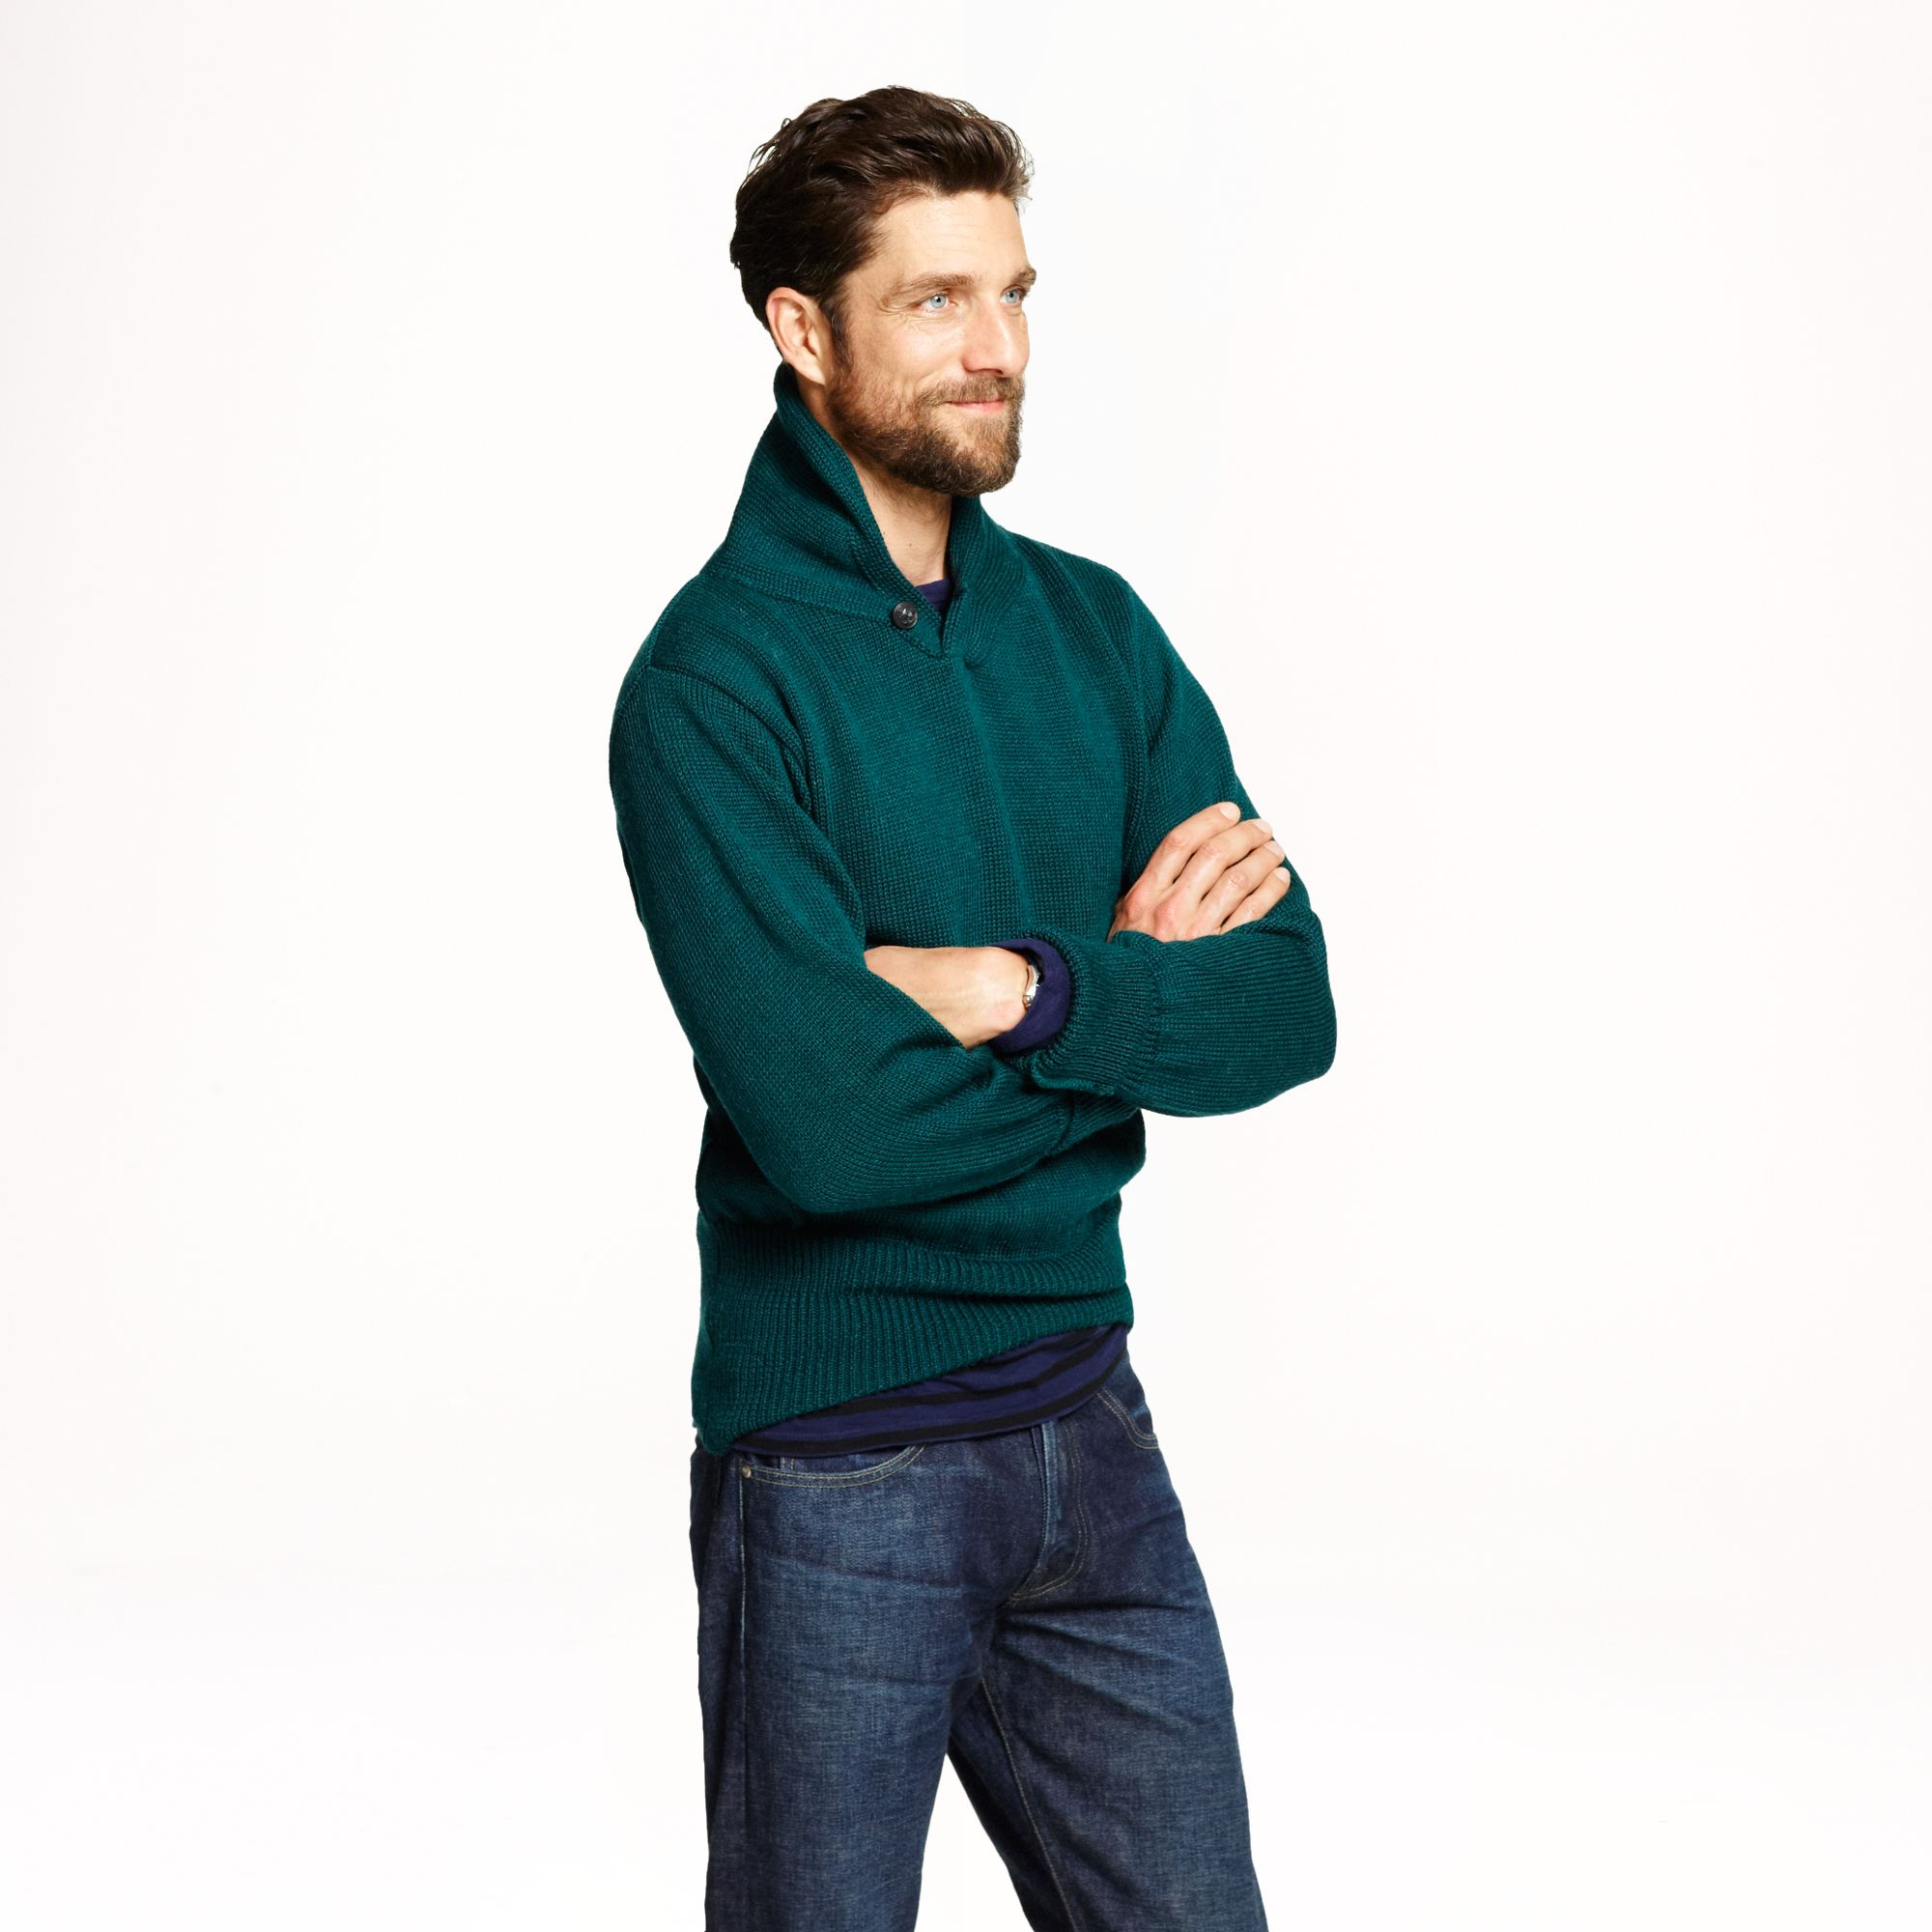 Lyst j crew north sea clothing expedition sweater in for J crew mens outfits